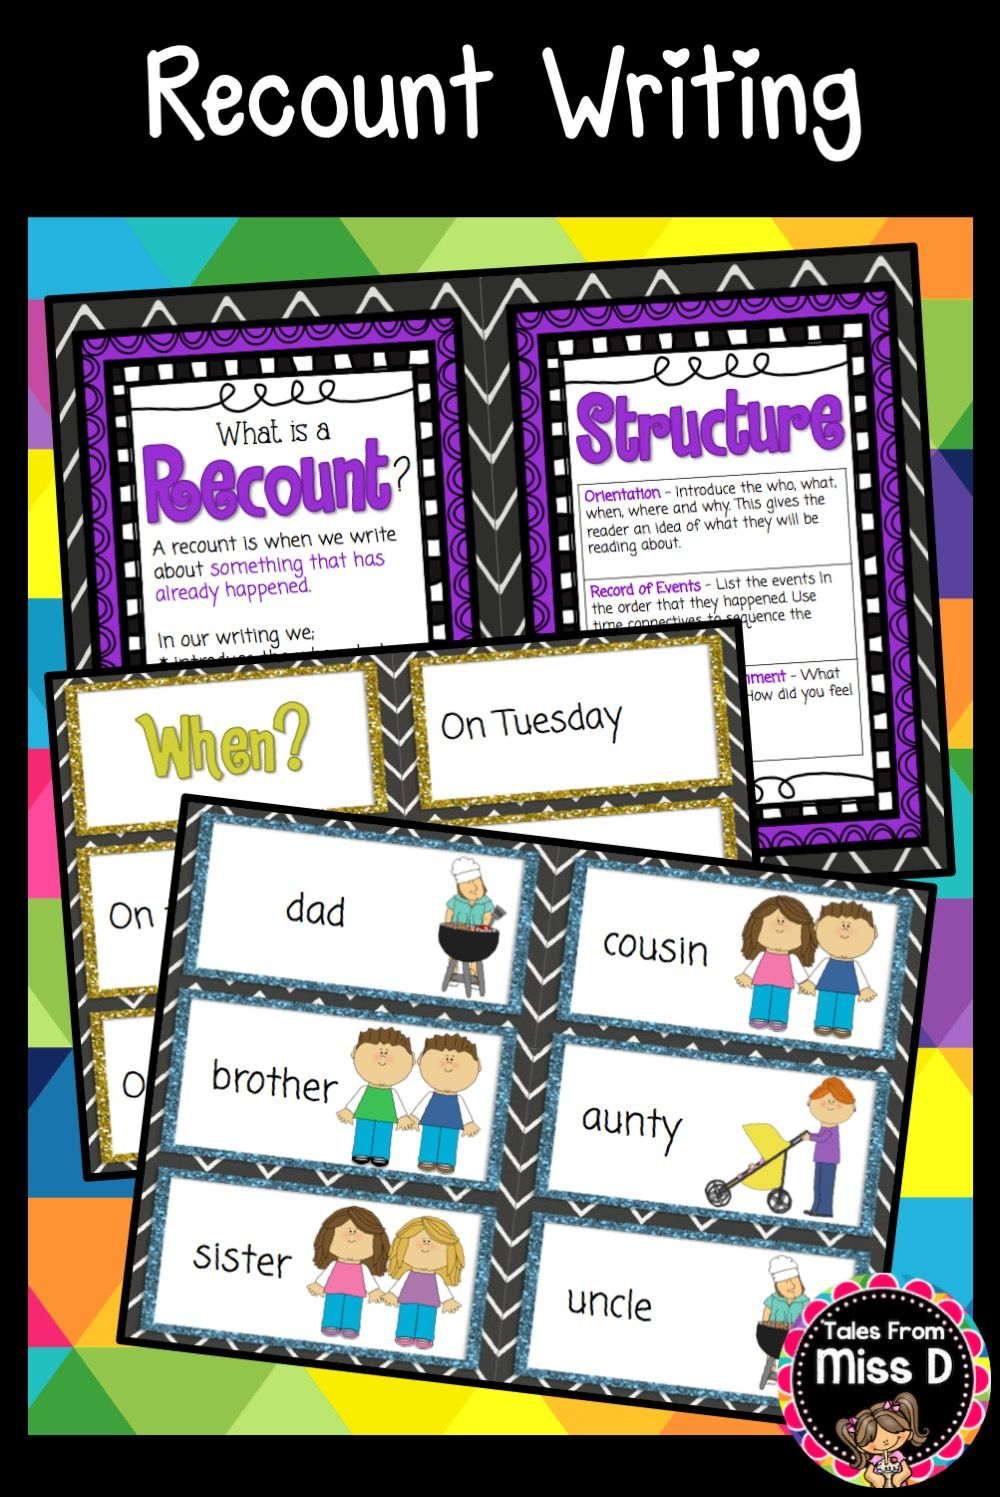 Recount Writing - Graphic Organizers, Writing Prompts and Rubric